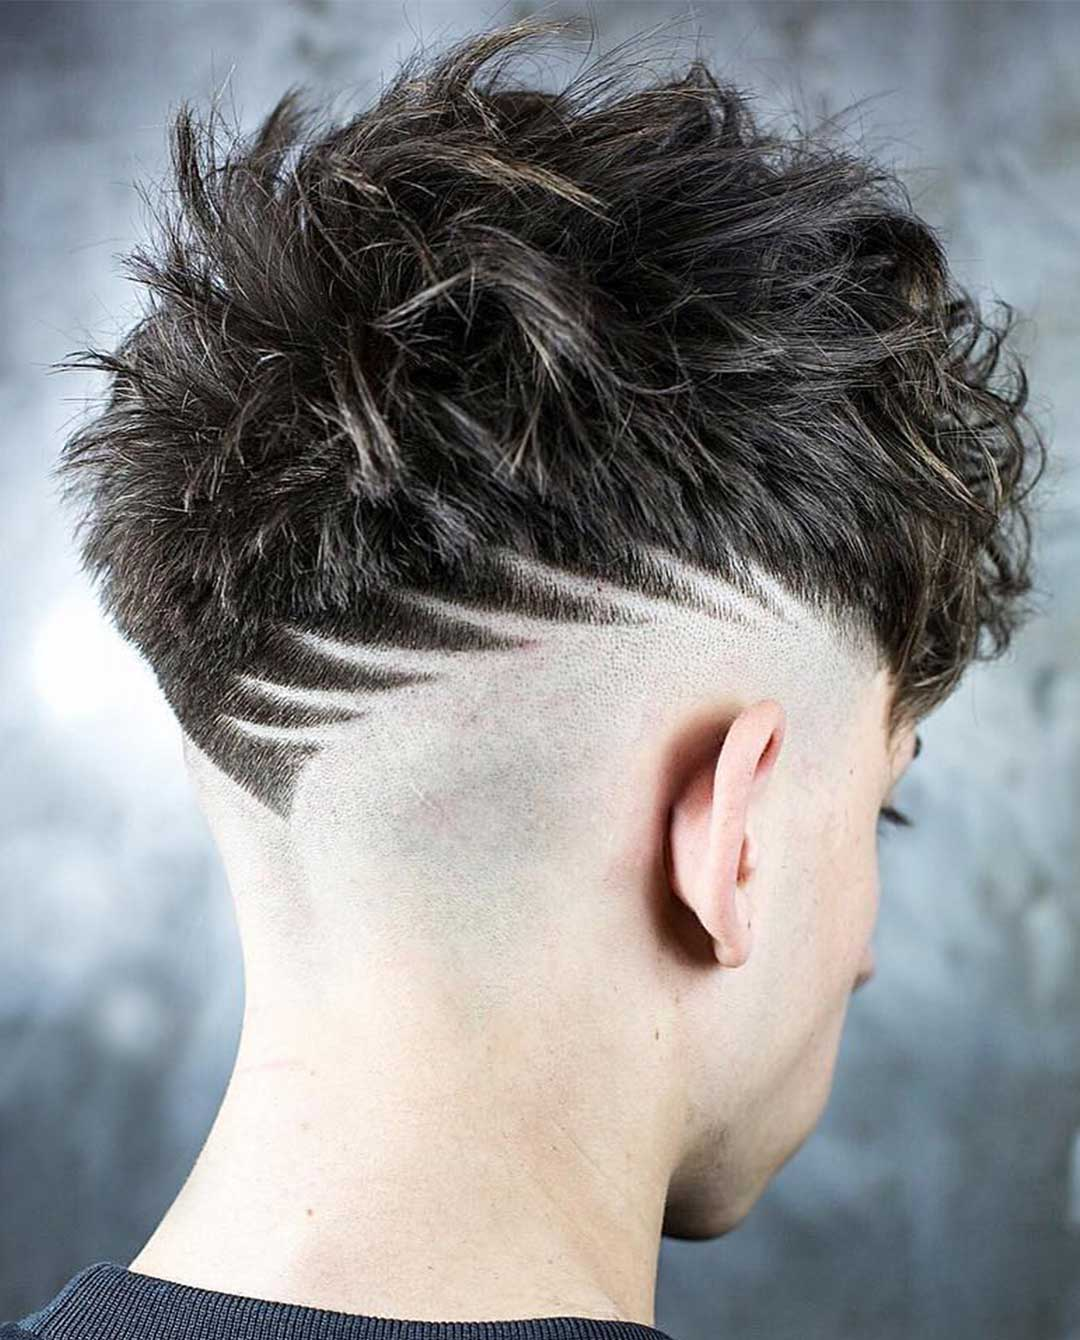 Thorns Hair Design with Skin fade